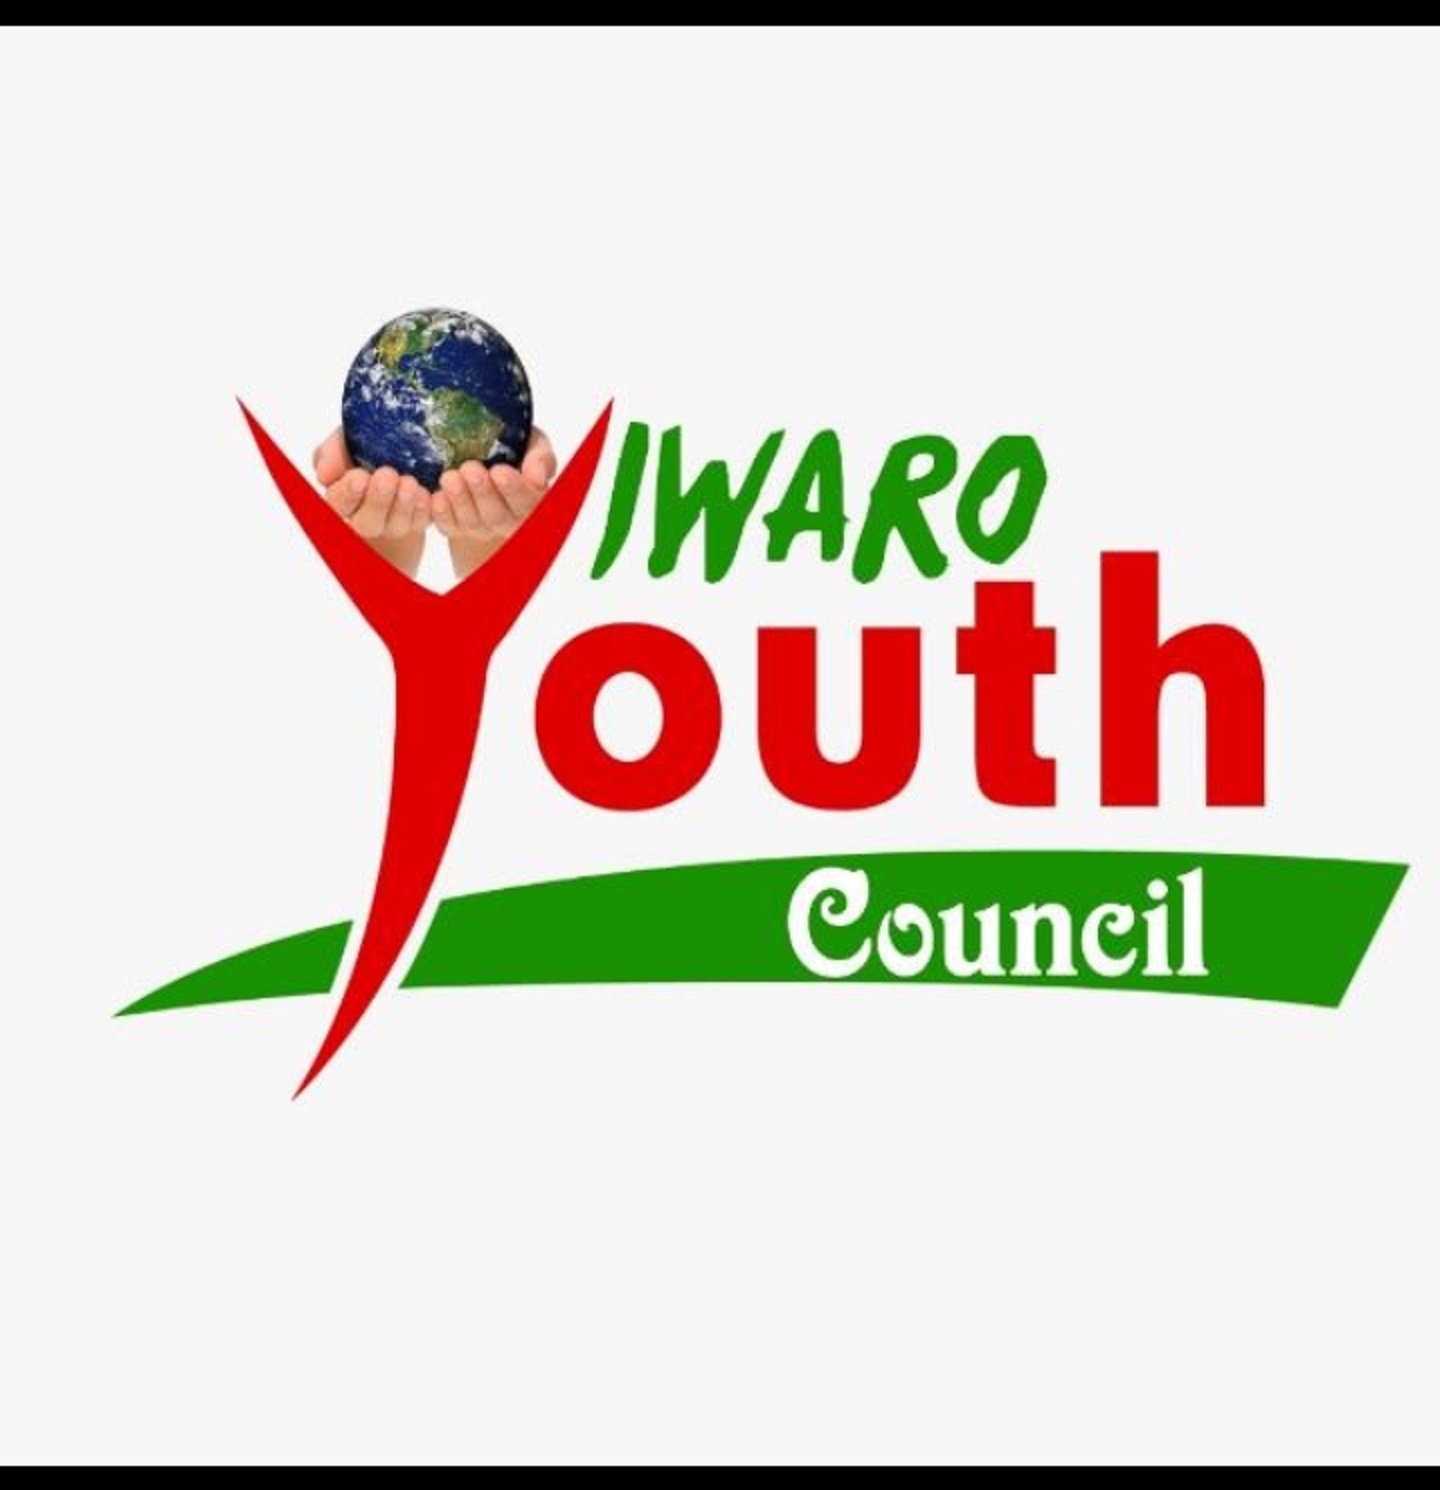 IWARO YOUTH COUNCIL (IYC) MEETS TAXI (AGOLO) DRIVERS IN AKSW REVERT T-FARE TO #50